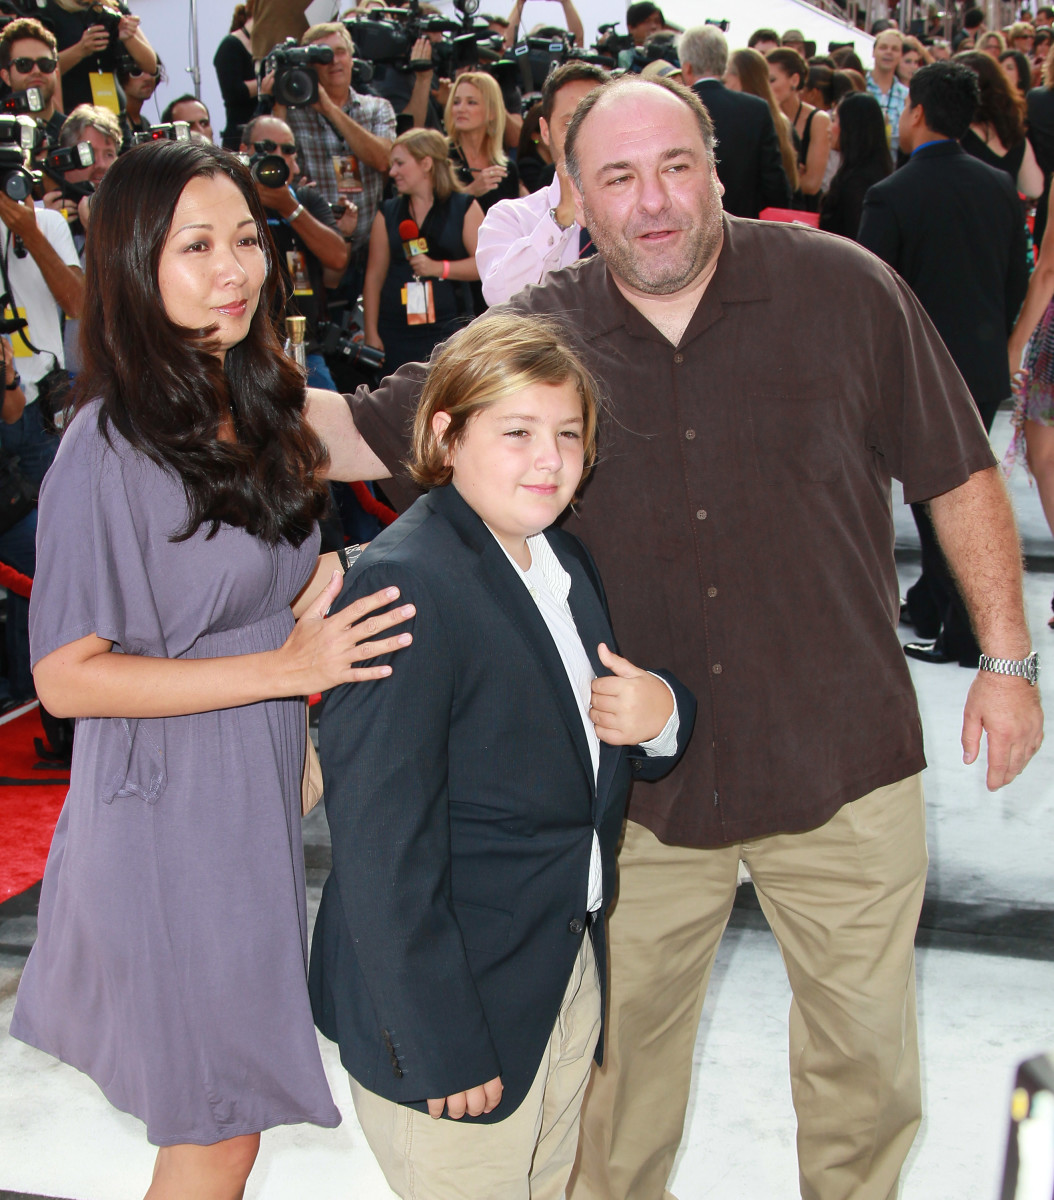 """James Gandolfini with his wife Deborah Lin and son, Michael, at the premiere of """"IRIS - A Journey Through the World of Cinema"""" on September 25, 2011, in Hollywood, California"""